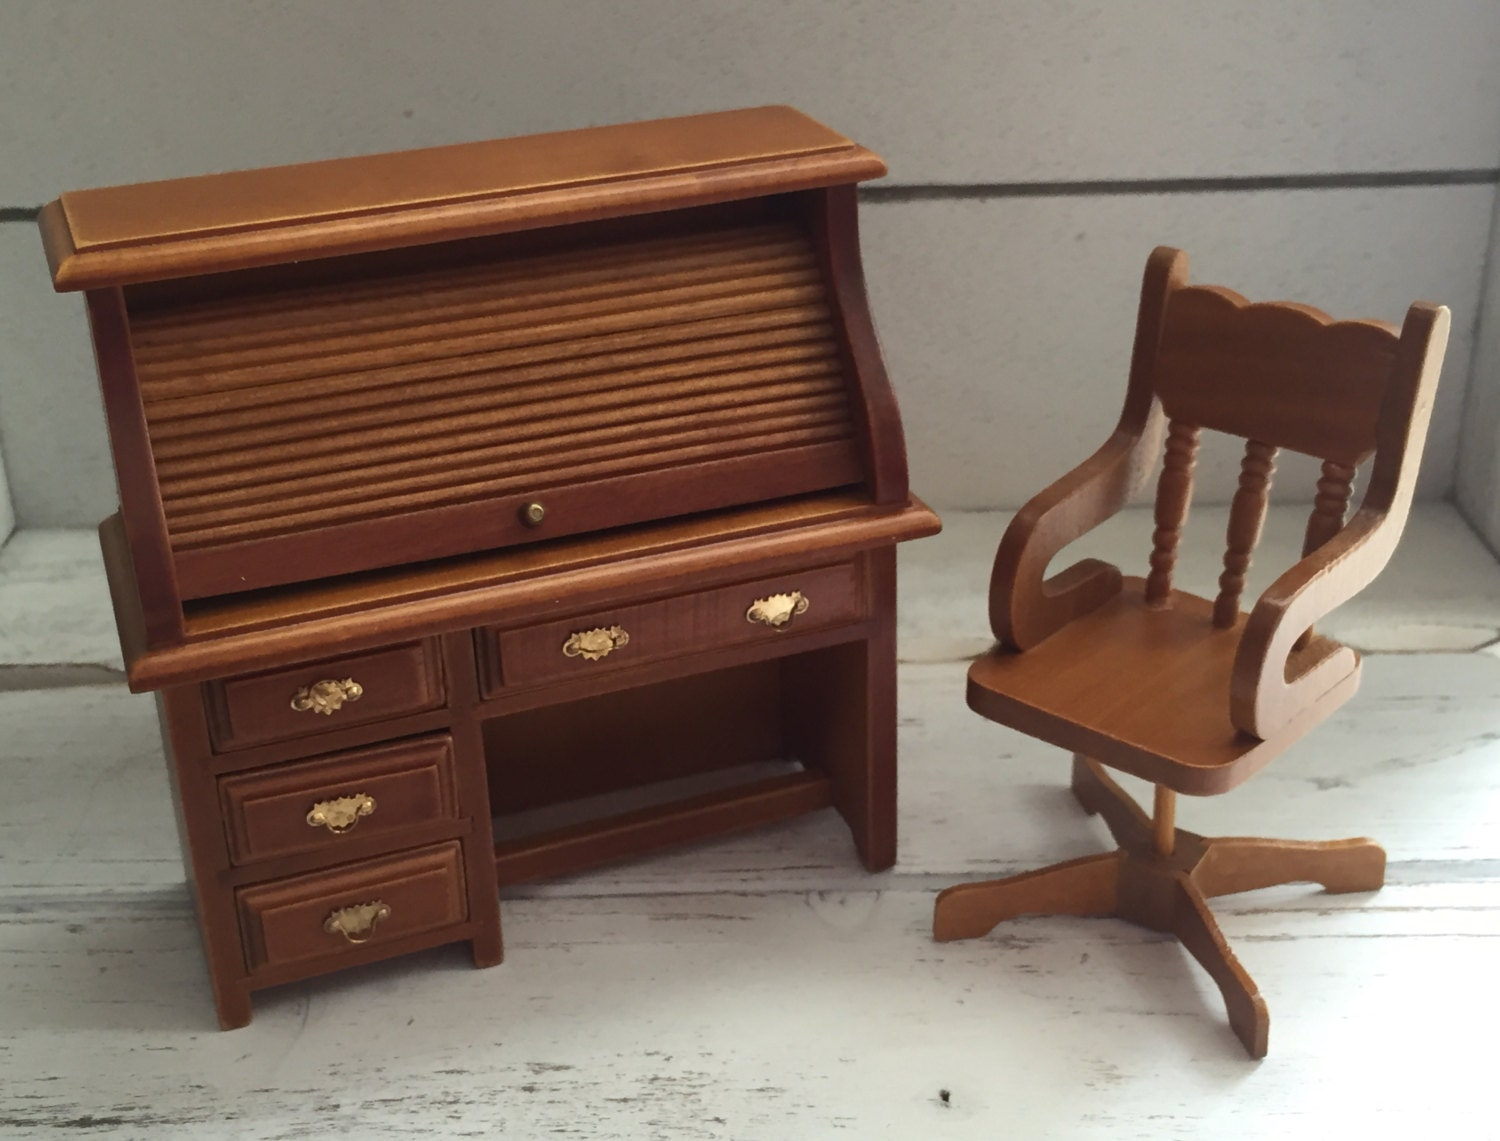 Surprising Miniature Roll Top Desk And Swivel Chair Set Wood Dollhouse Download Free Architecture Designs Scobabritishbridgeorg